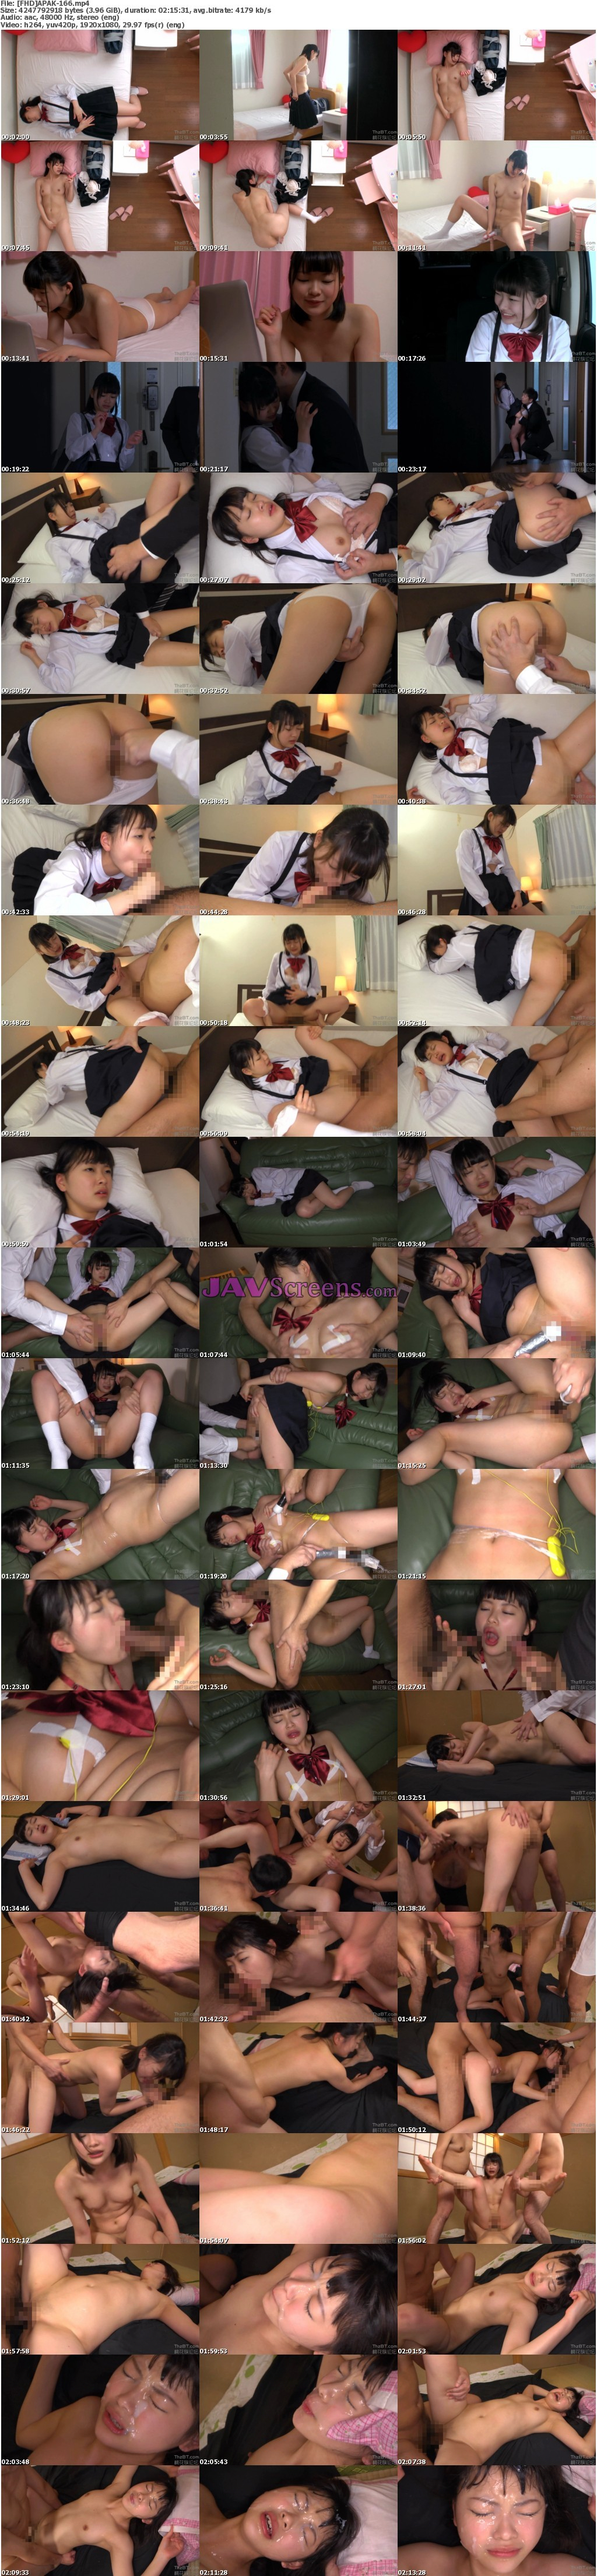 APAK-166.jpg - JAV Screenshot